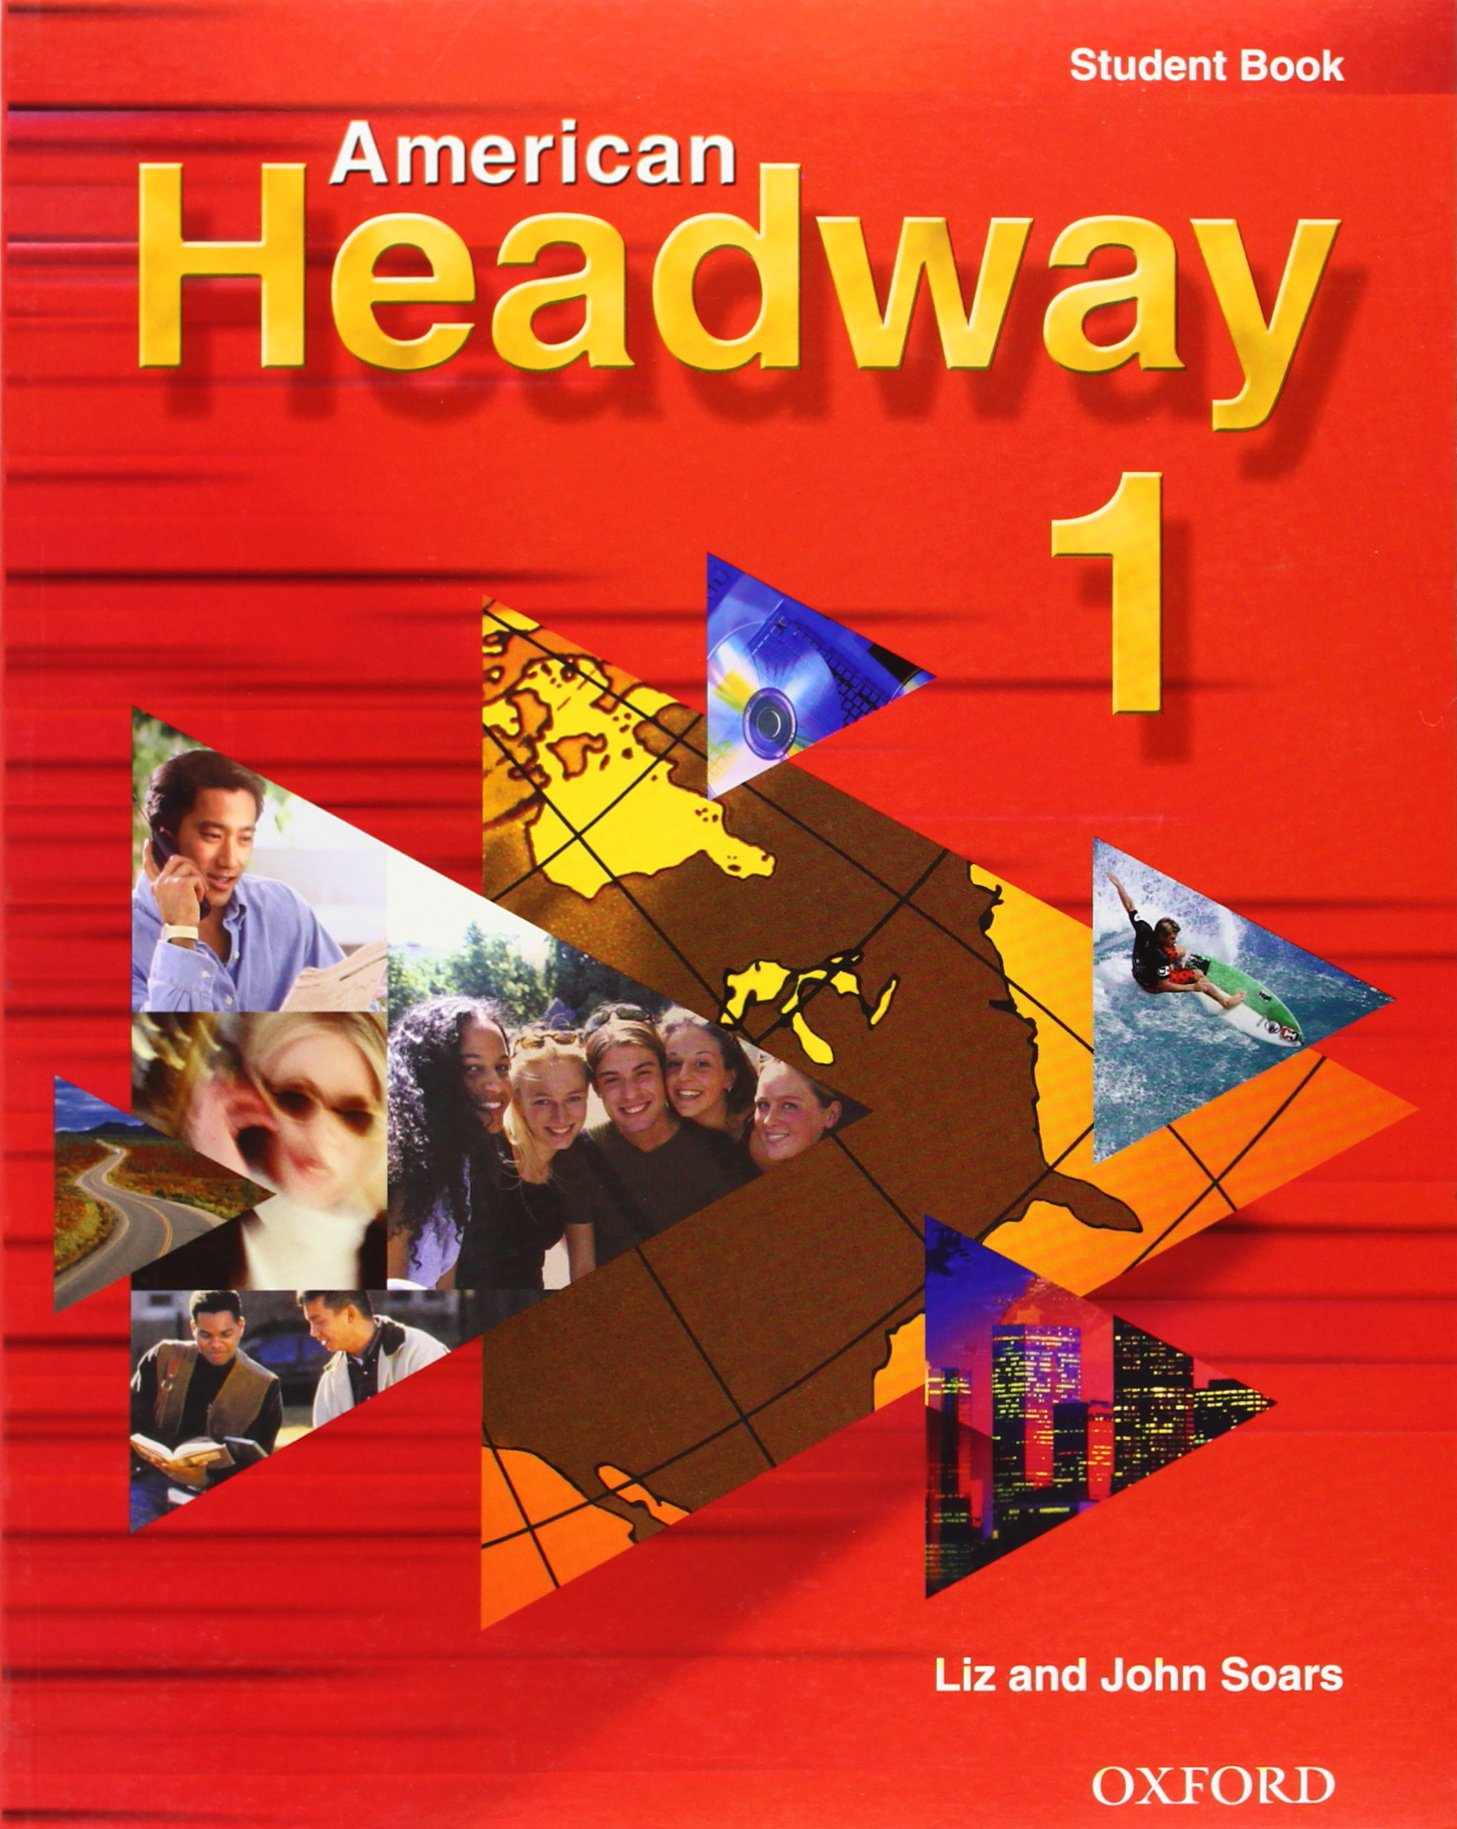 American Headway 3 Second Edition Workbook Pdf